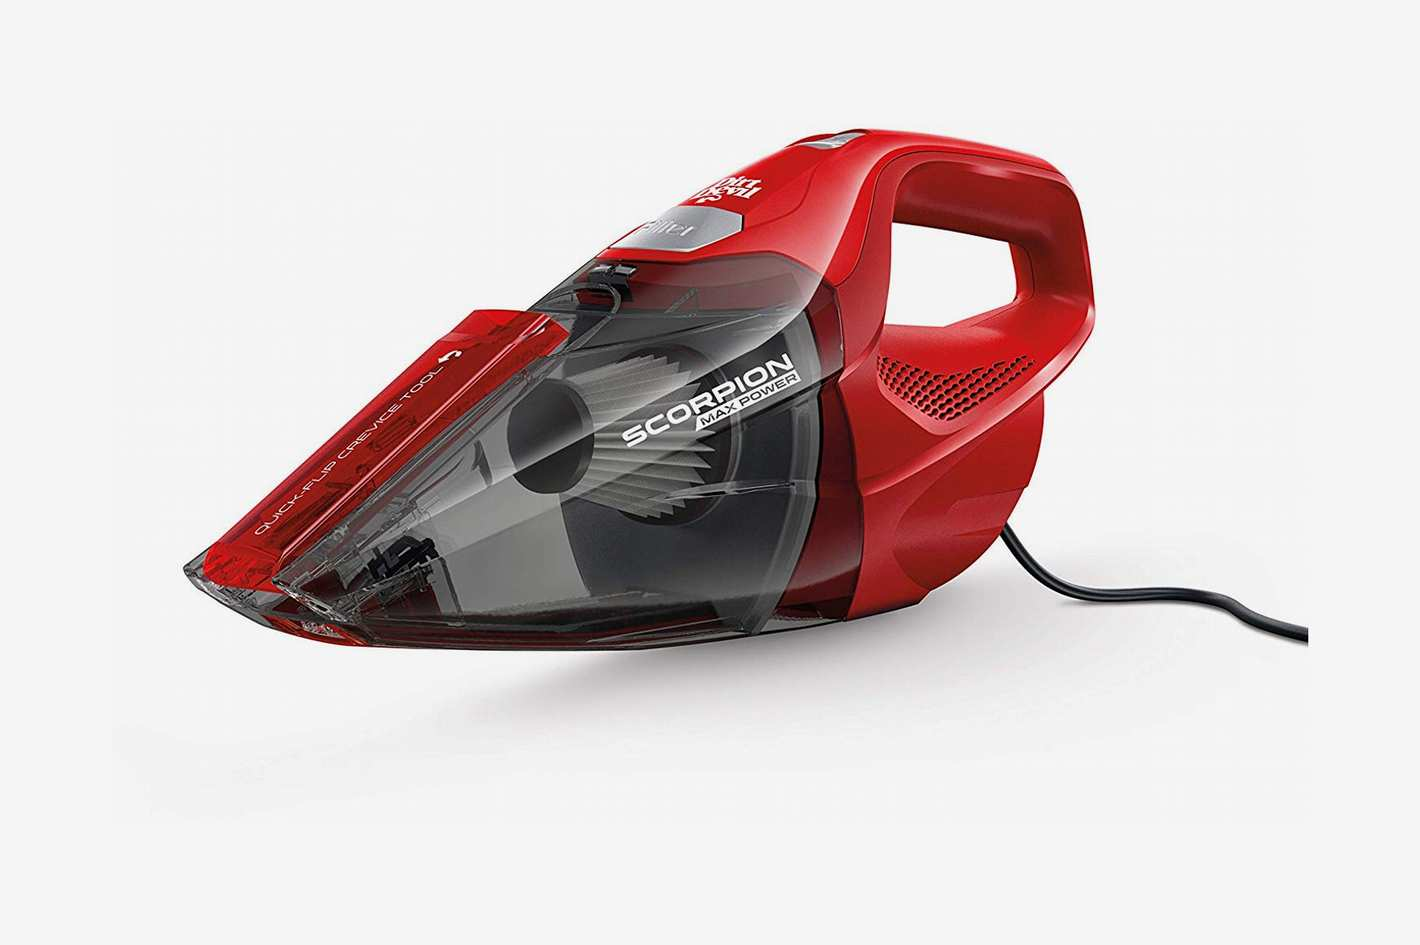 Dirt Devil Scorpion Quick Flip Corded Bagless Handheld Vacuum